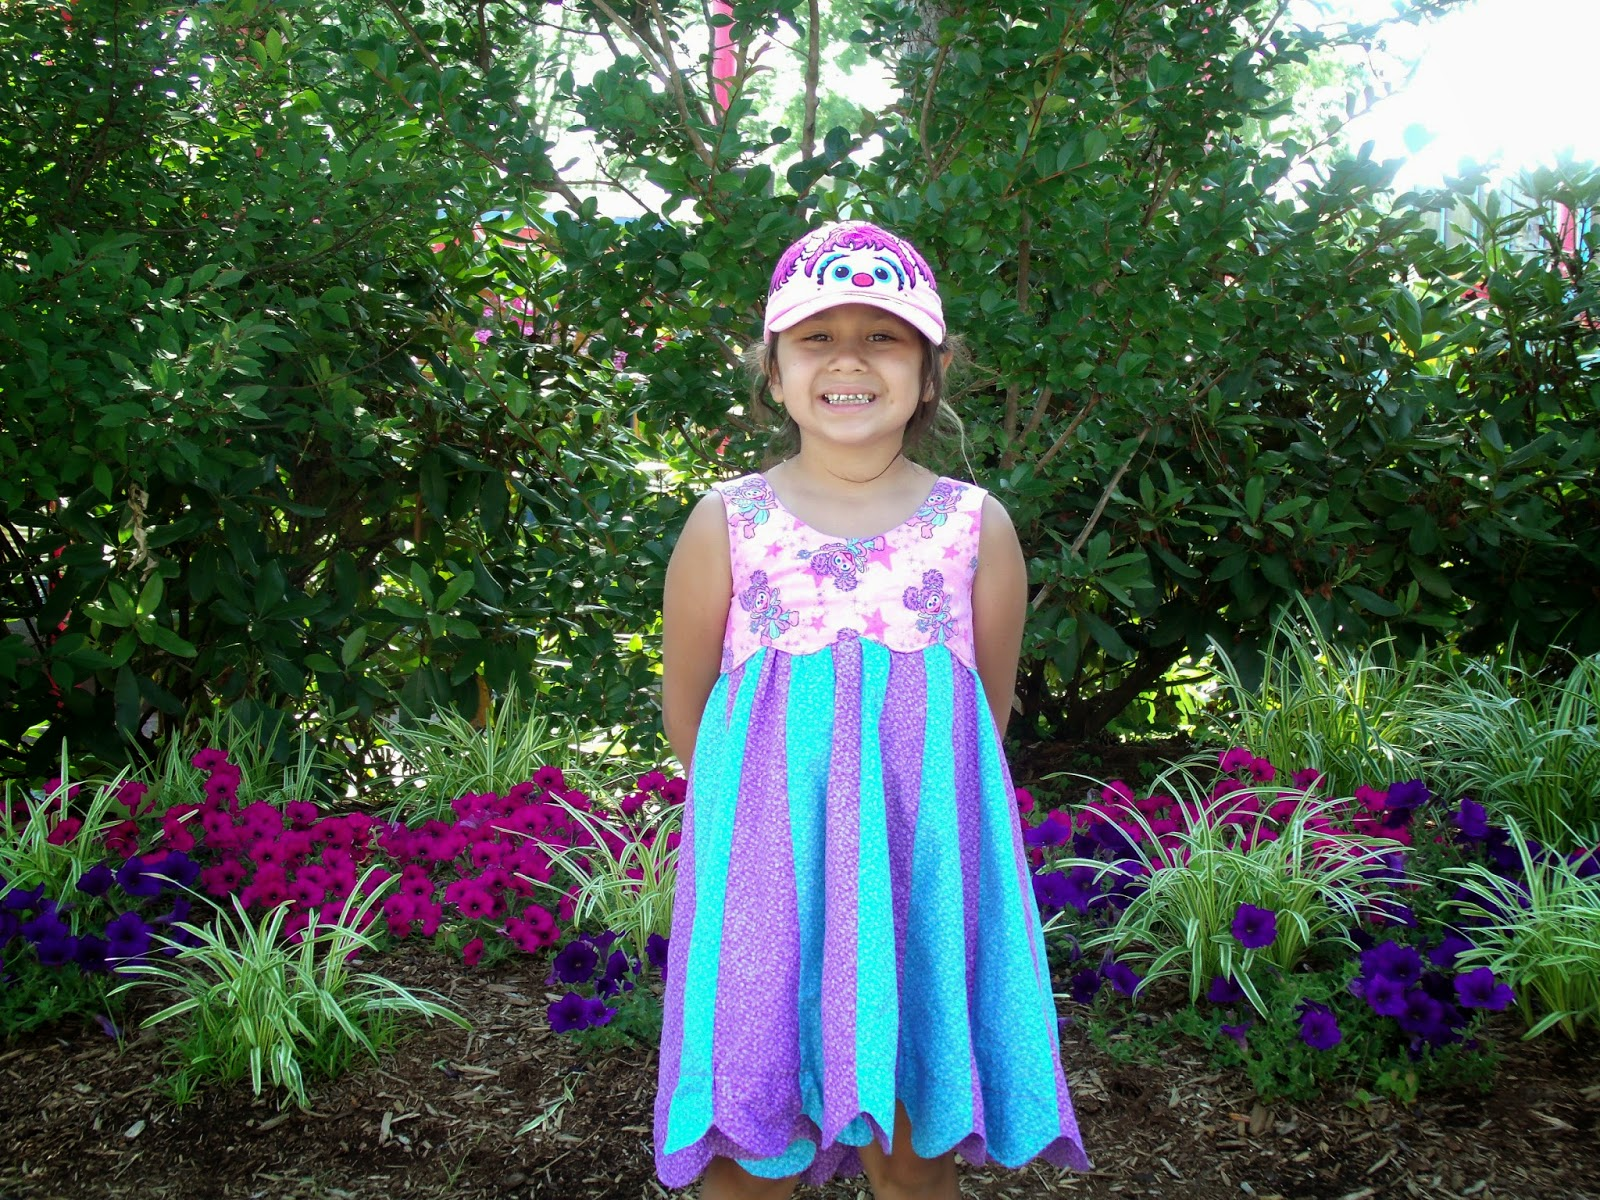 Little Kiwi's Closet Scalloped Princess Dress by Keep Calm and Carrion